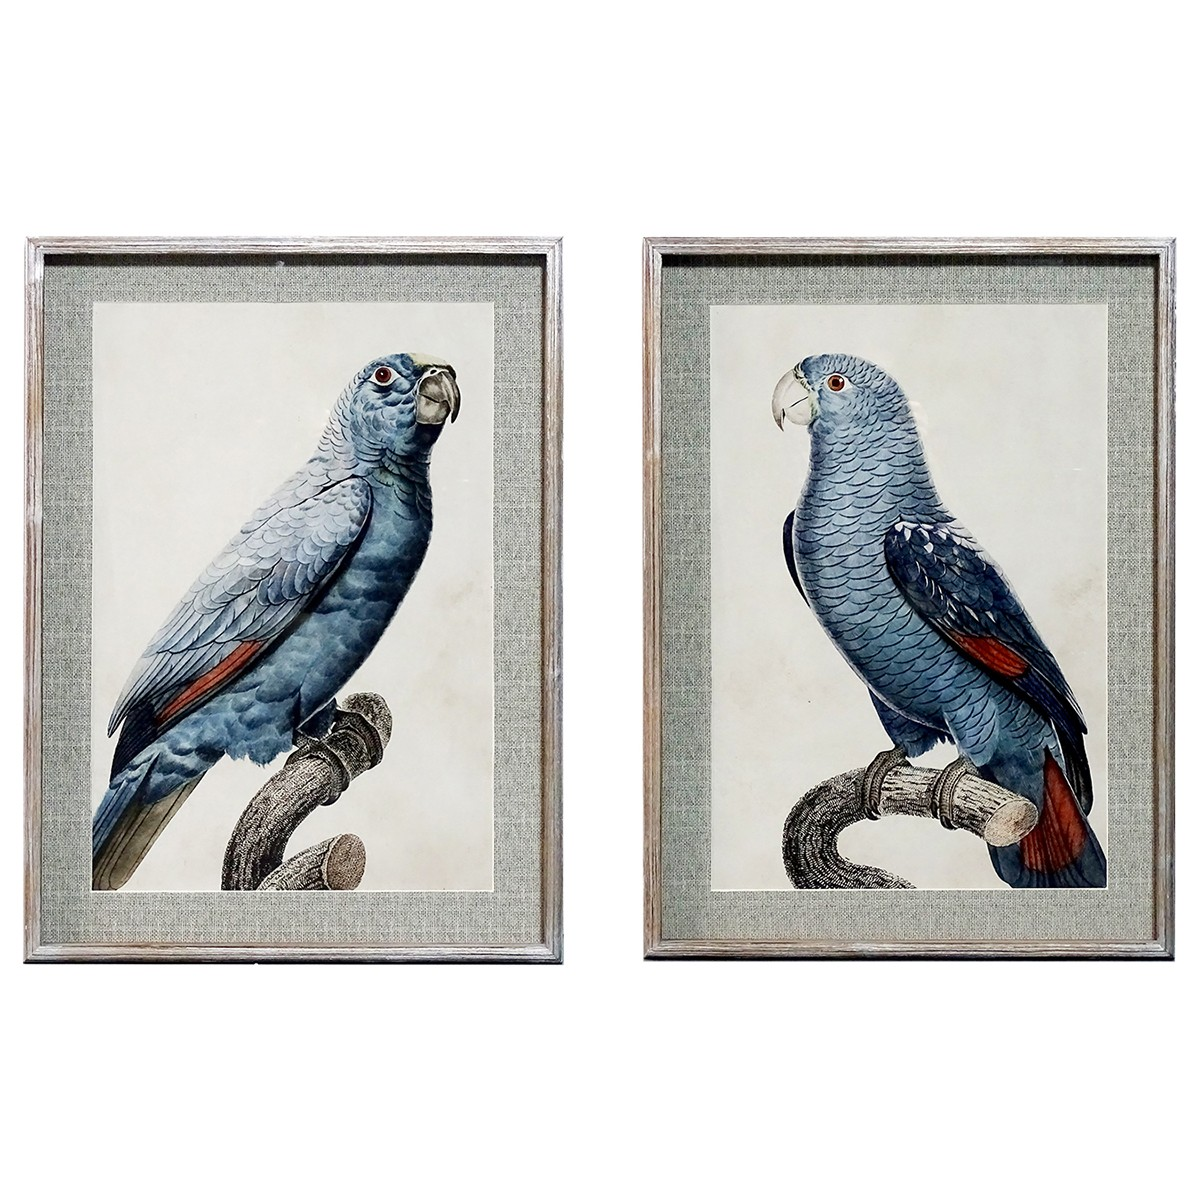 Welland 2 Piece Timber Framed Wall Art Print Set, King Parrot, 74cm